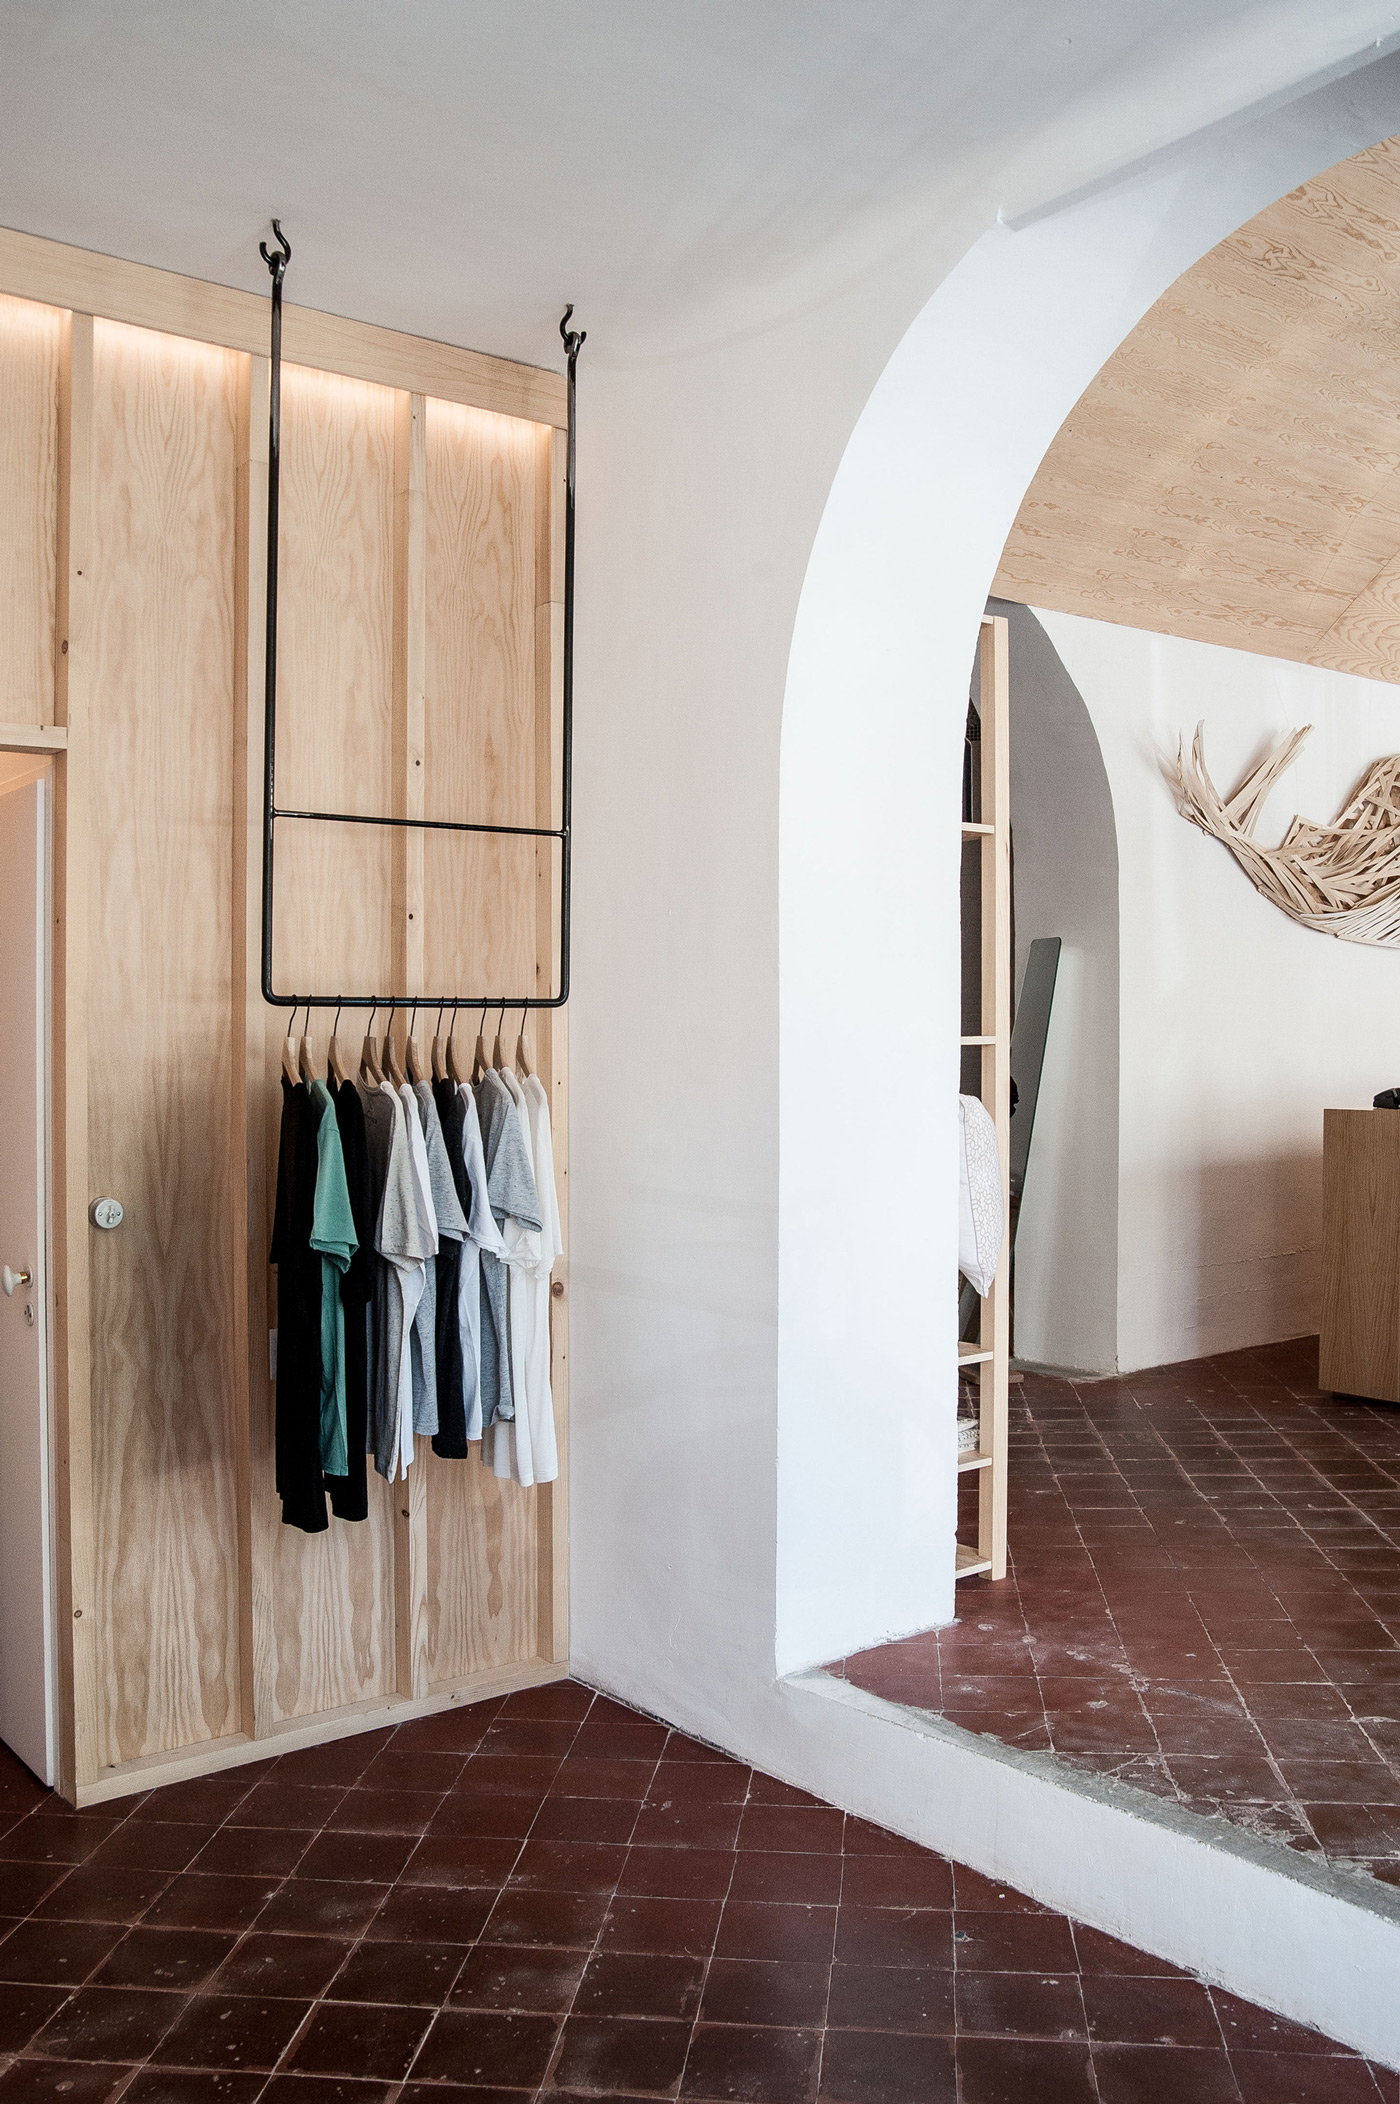 Shop and Exhibition Space in Marseille / Atelier M3a Architectes (1)